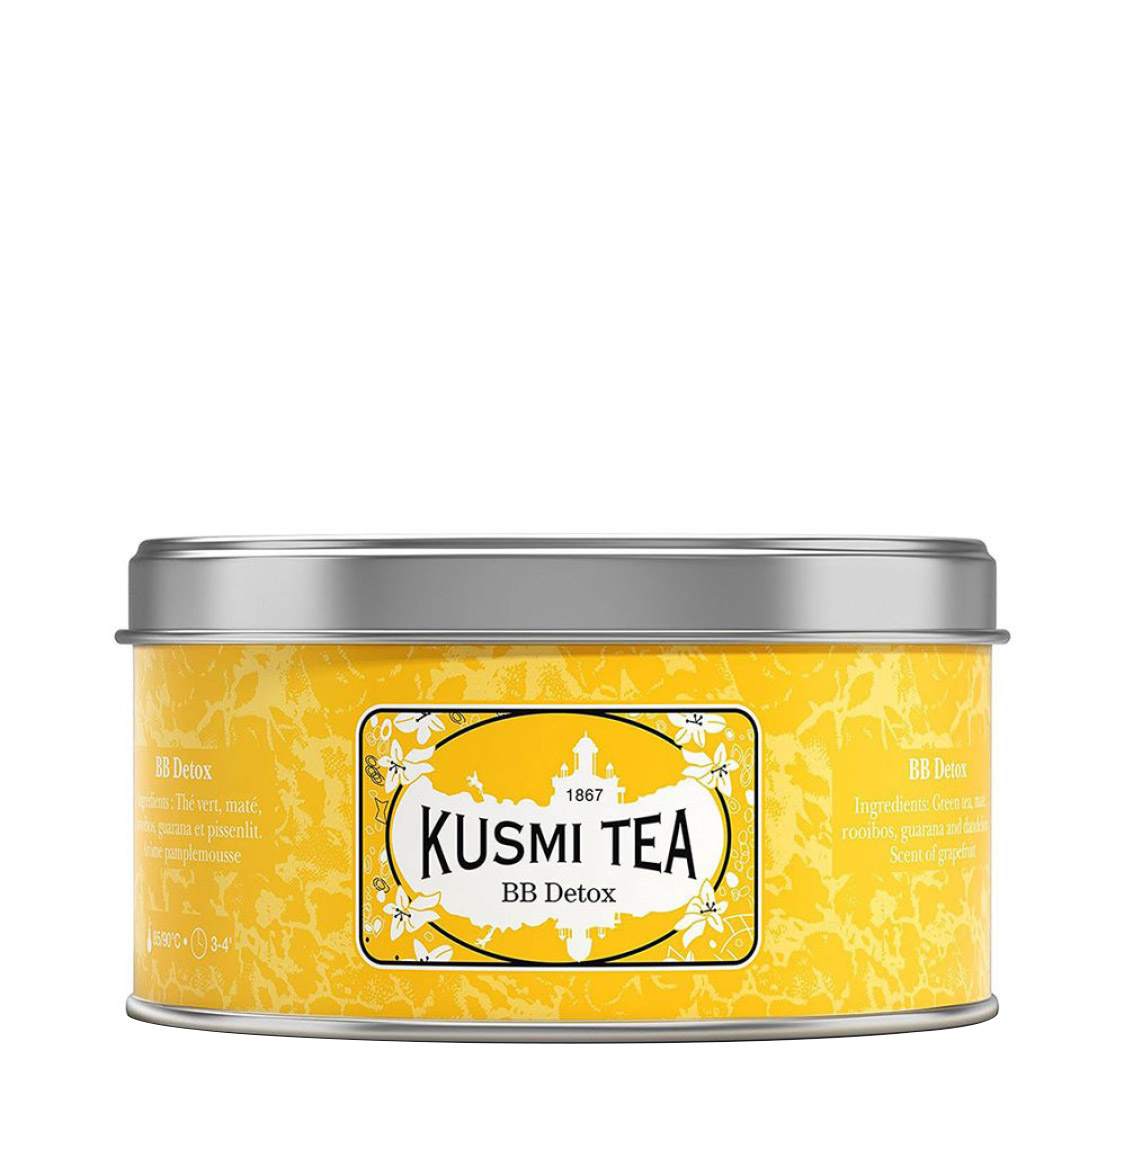 Kusmi Tea BB Detox Wellness 125g